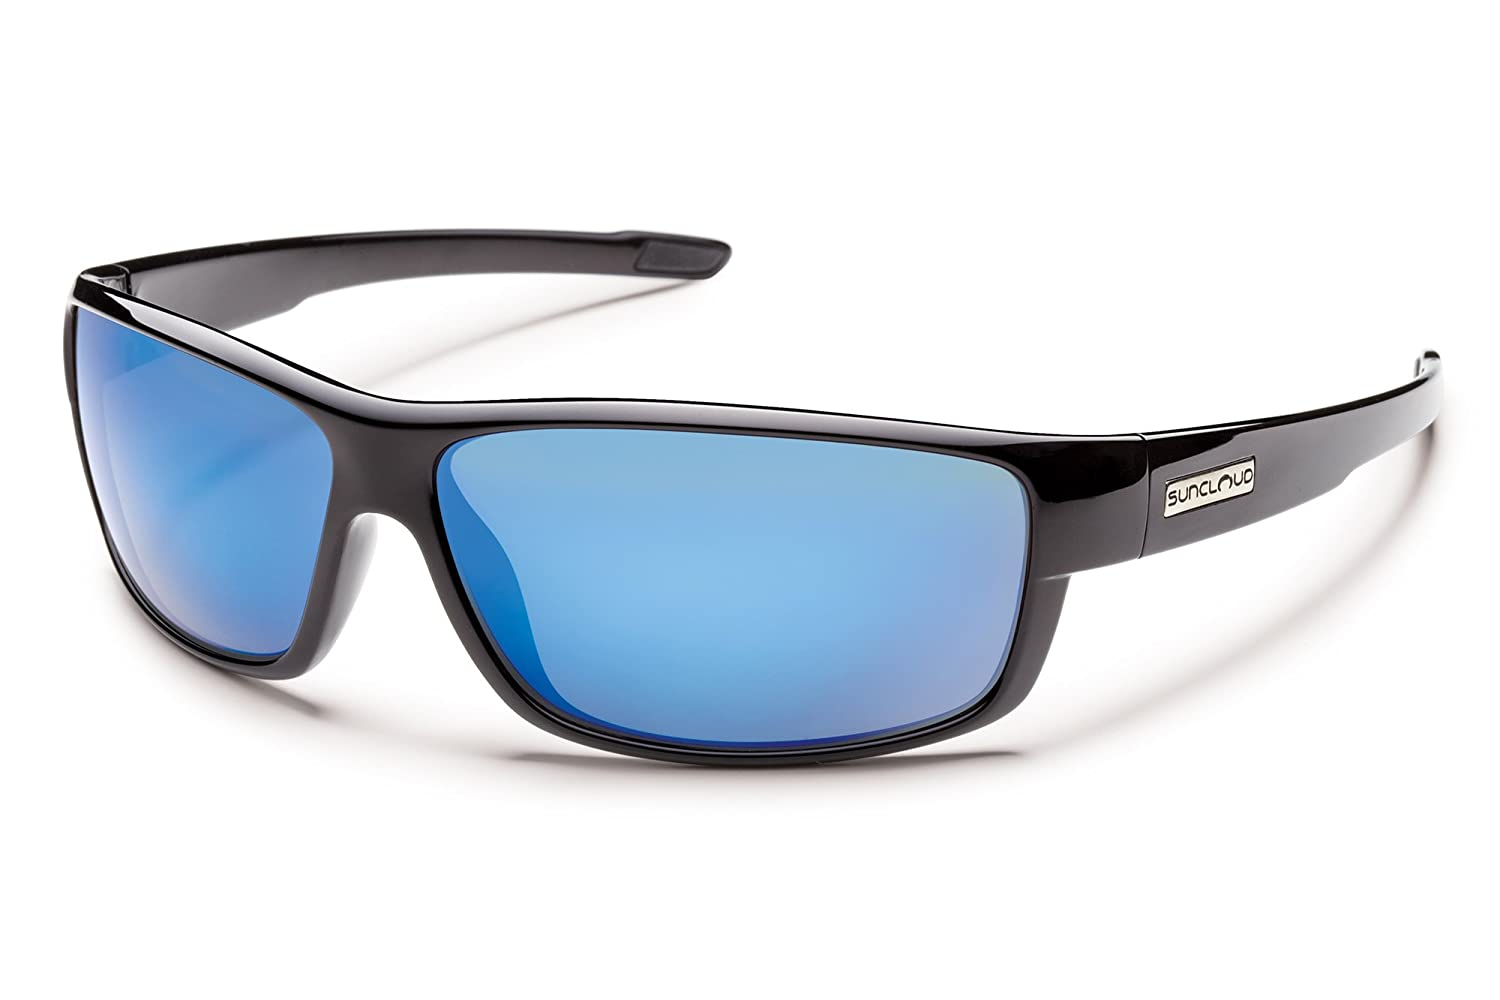 654478dab6444 Amazon.com  Suncloud Optics Voucher Polarized Sunglasses(Blue Mirror  Polarize